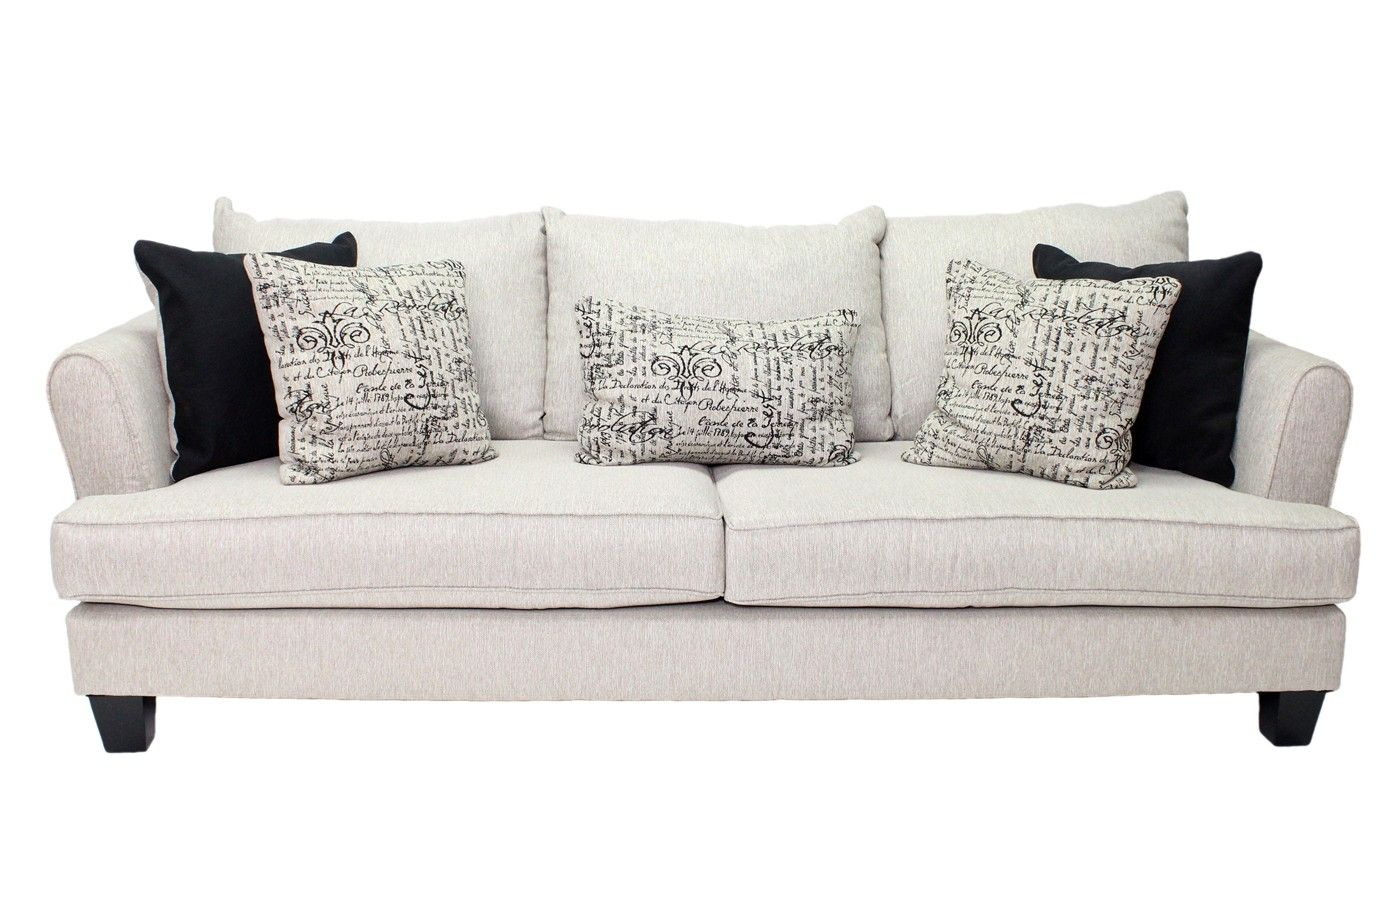 Mor Furniture For Less | Rachael Omega Mist Sofa   Sofas   Sofas U0026 Chairs